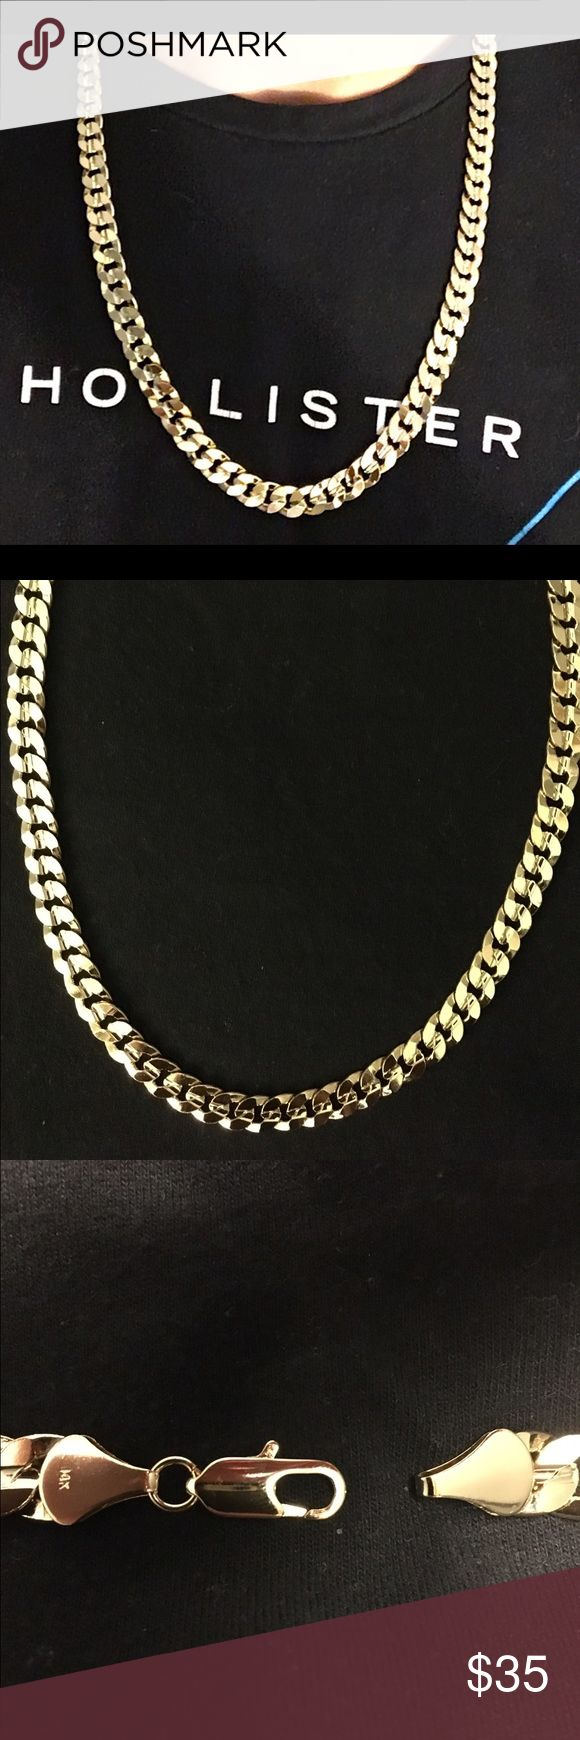 Gold Chain 14k stamped 24in 10mm Cuban WAS $60 NOW $35 FOR LIMITED TIME!                    Limited Quantity. Get yours Now! High quality 14k gold filled Cuban Chain Chain is: Stamped 14k • 10mm  • 24in • Gold filled with real gold. Gold filled is a thick layer of real gold. It is more valuable then plating and does not fade away or tarnish like plating. • High quality and durable.  Has good weight to it. • Packaged well and handled with care. • Shipped within the same or 1 day  • Delivered…